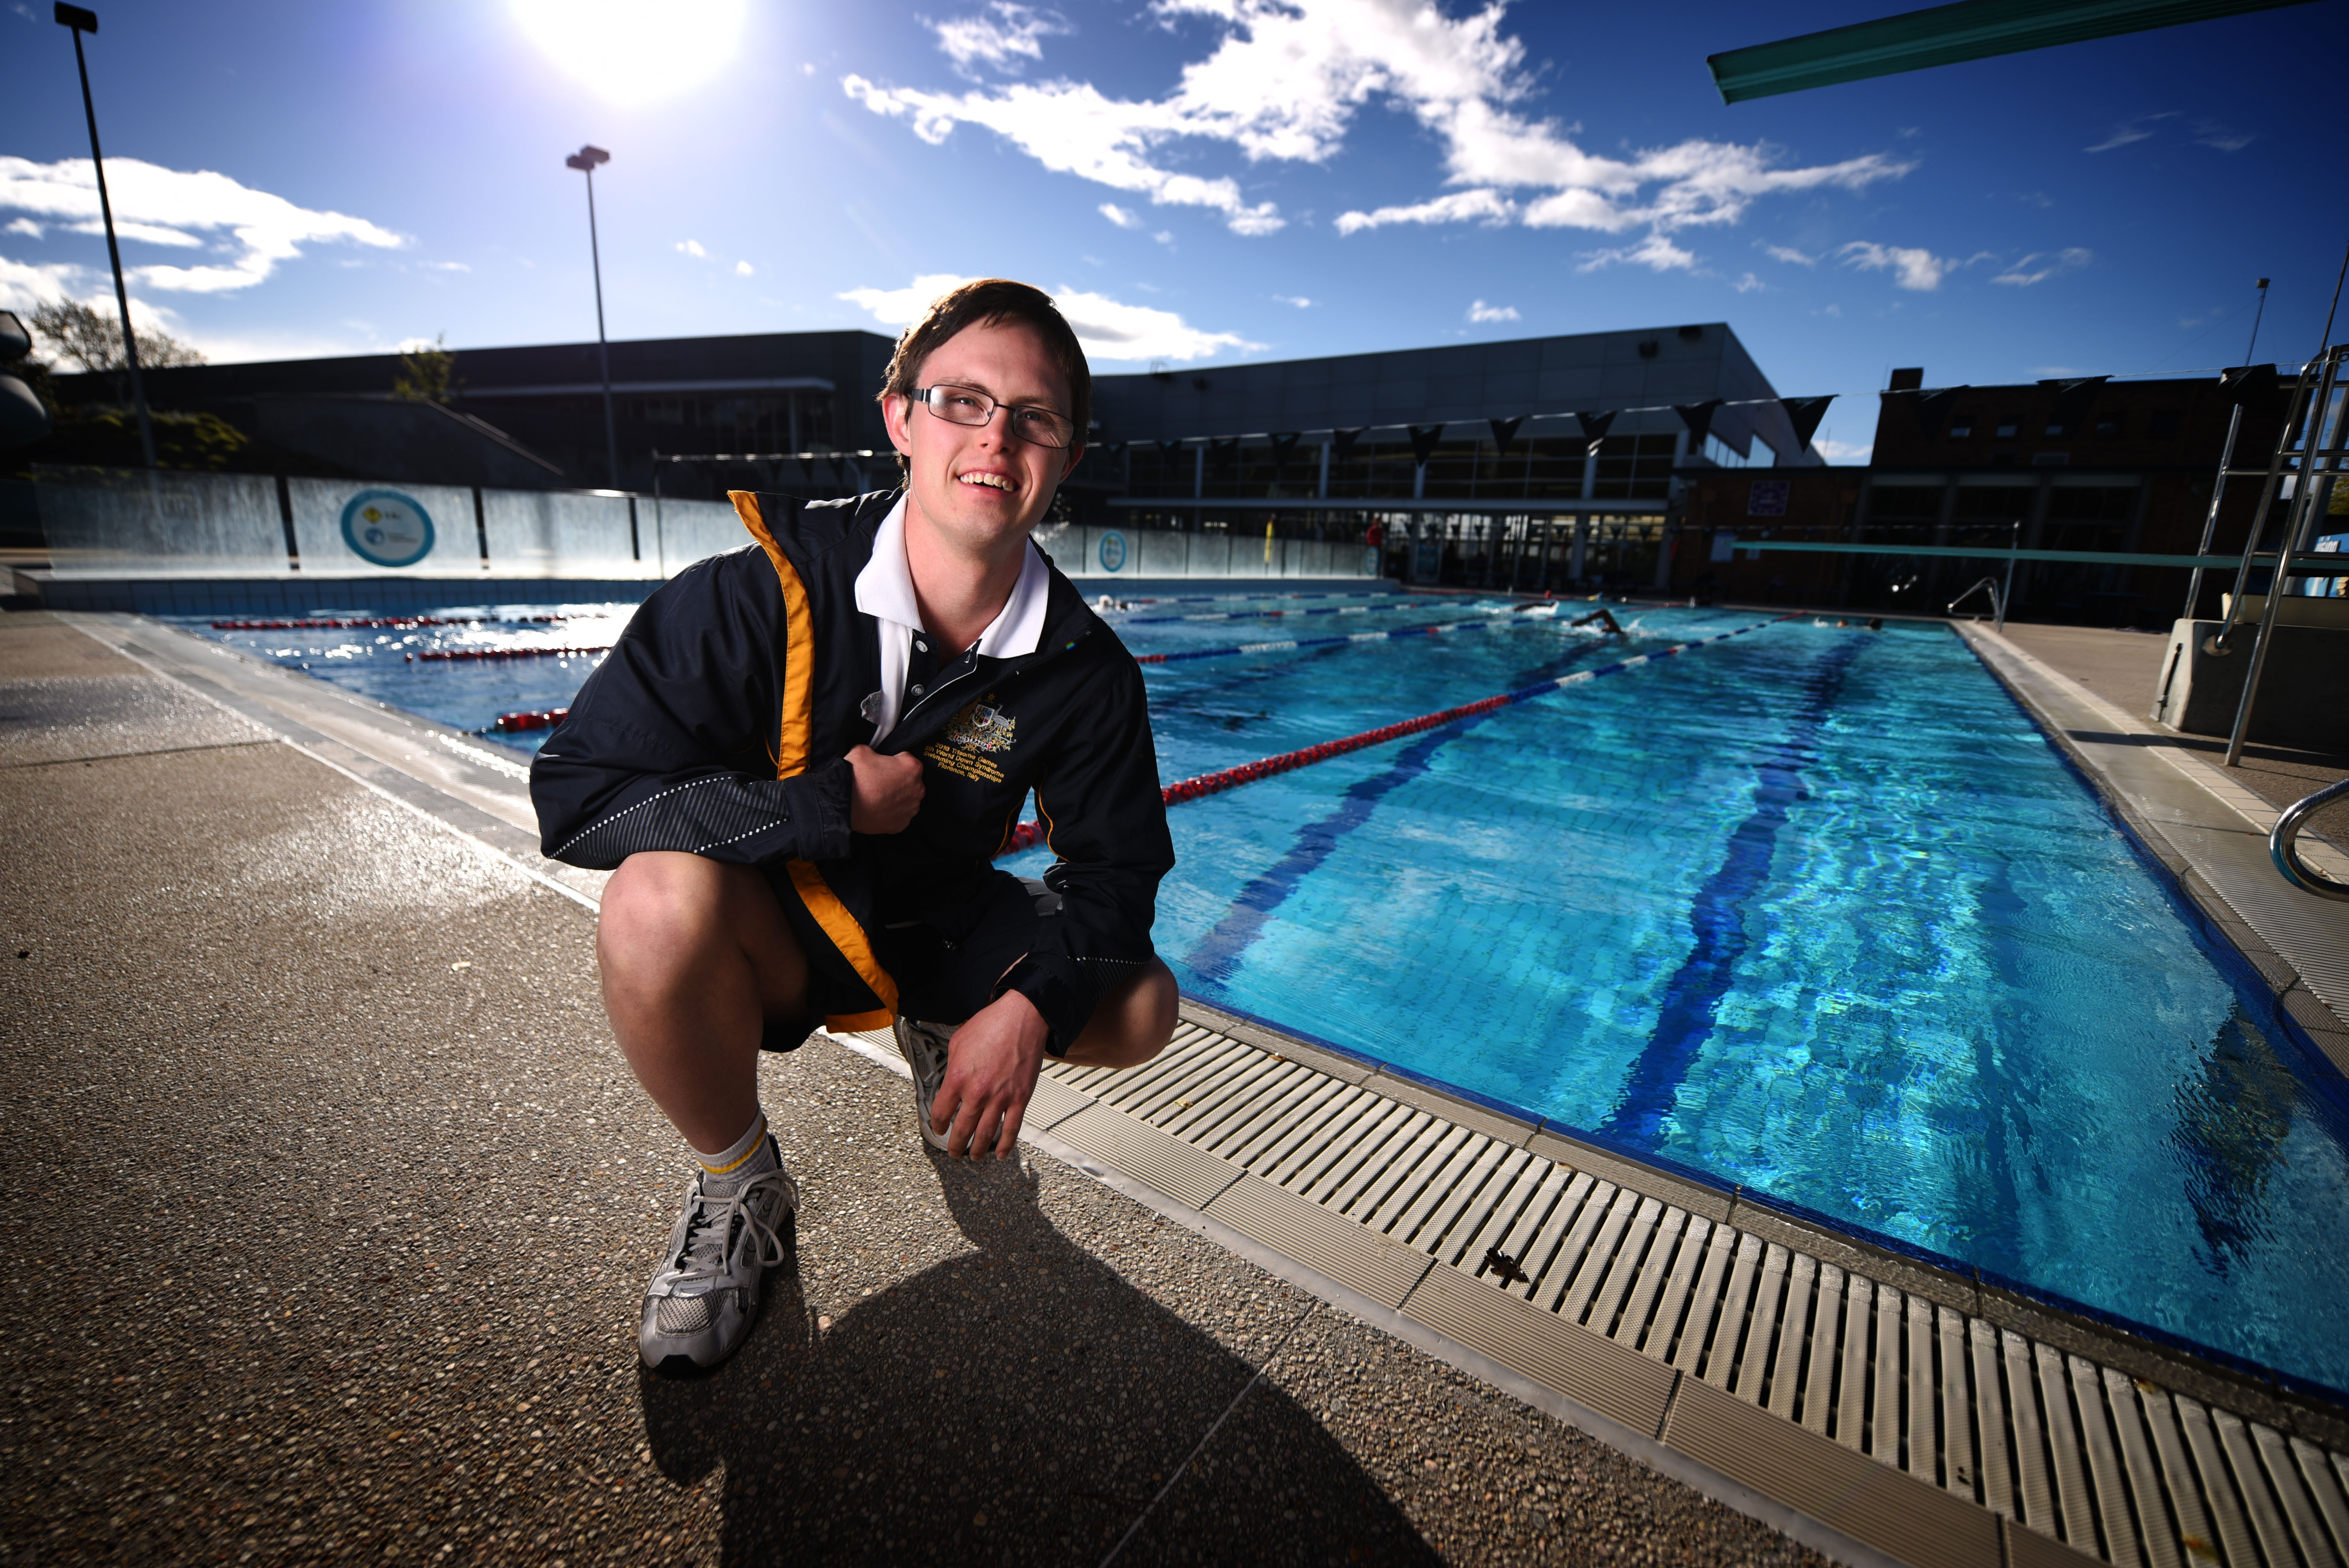 Young person kneeling by outdoor swimming pool on a sunny day